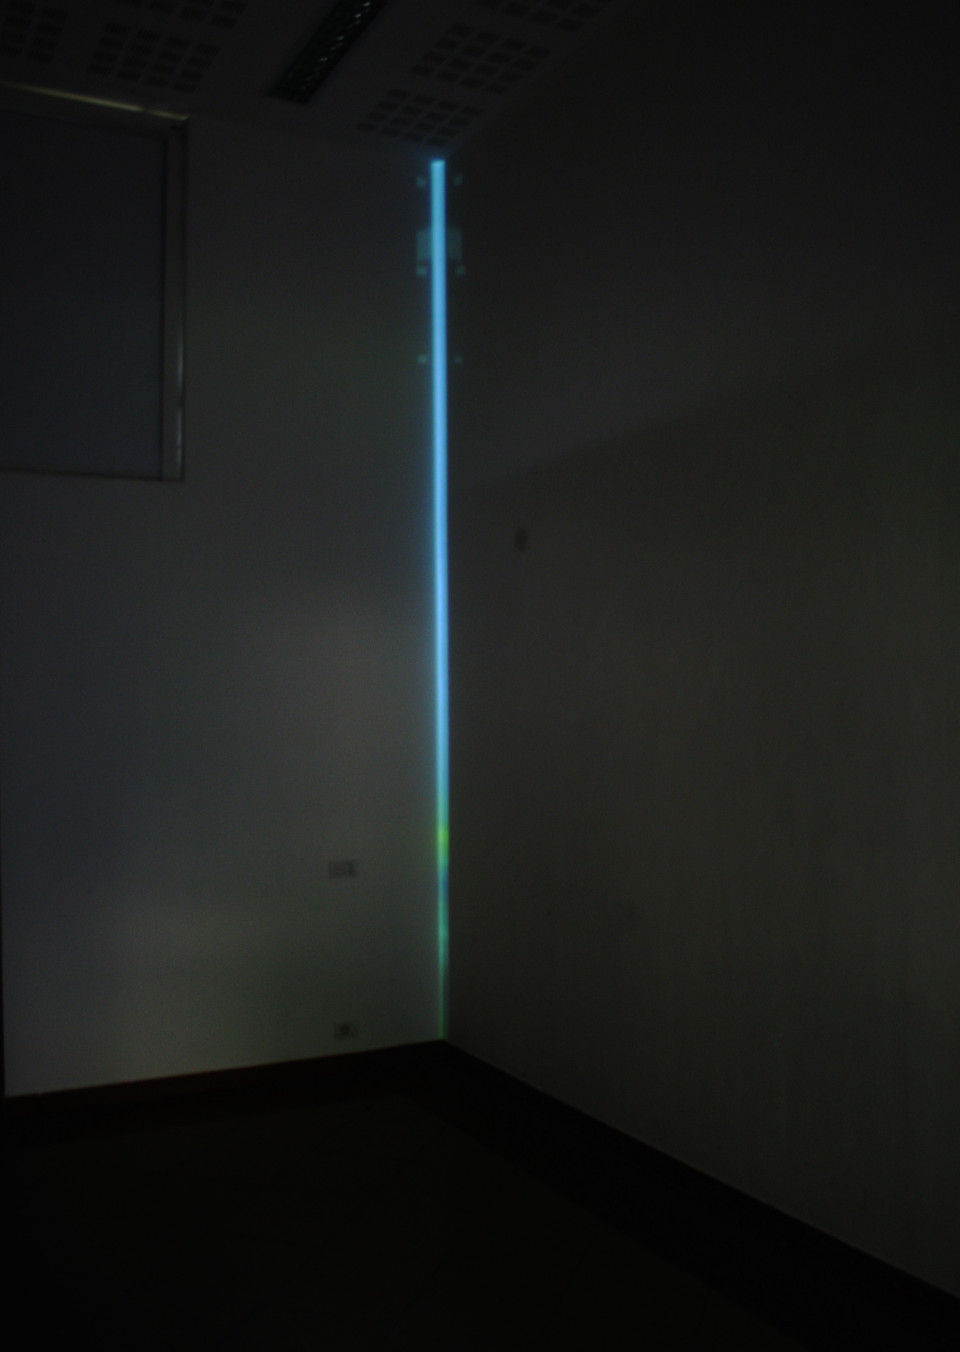 Elementi, installation view, 2007. Courtesy: the artist.